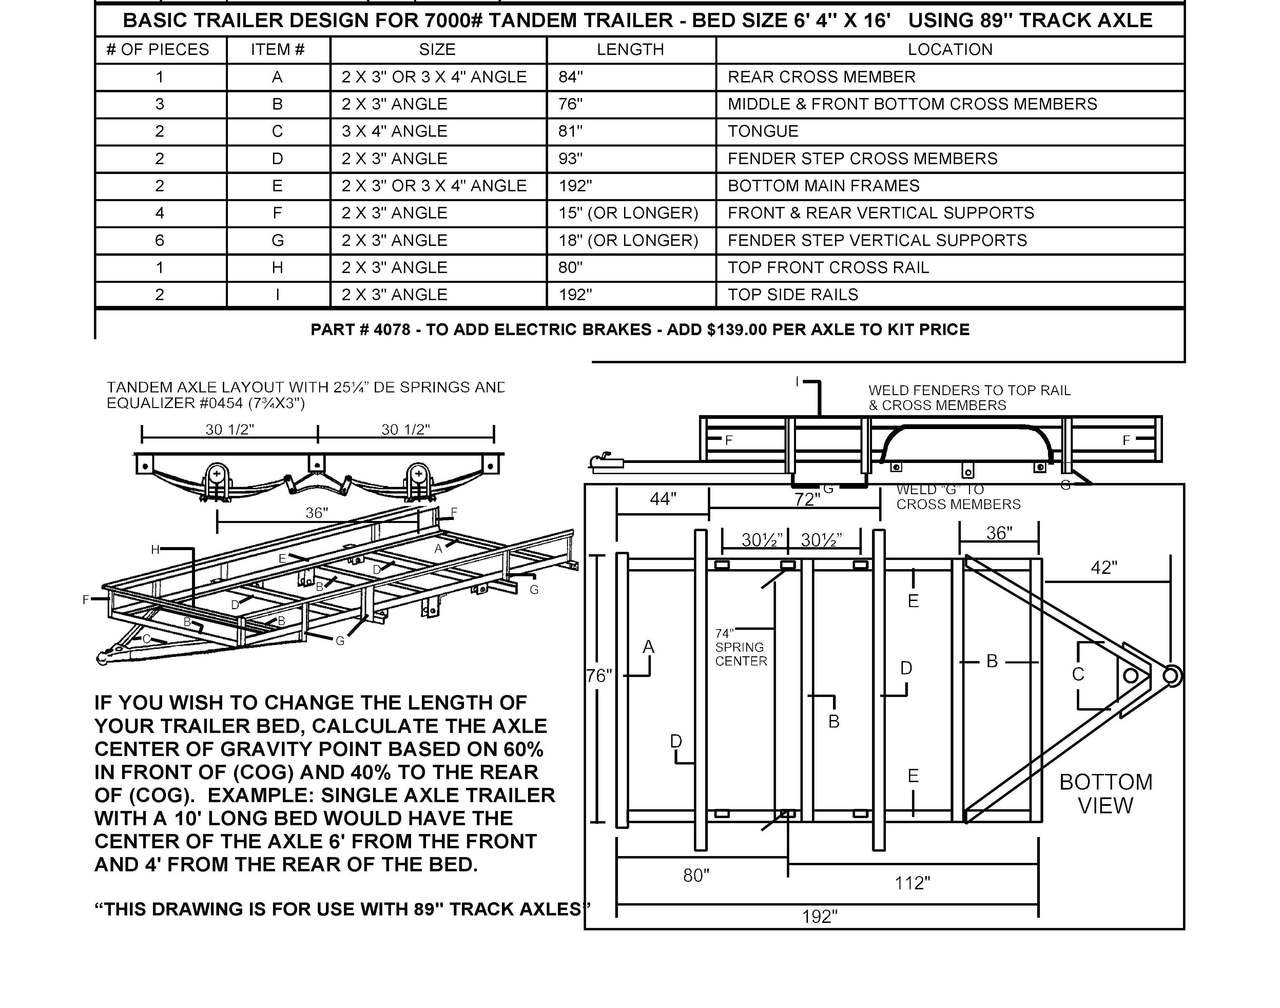 Build Your Own Utility Trailer with Champion Trailers Tandem Undercarriage  KitChampion Trailers